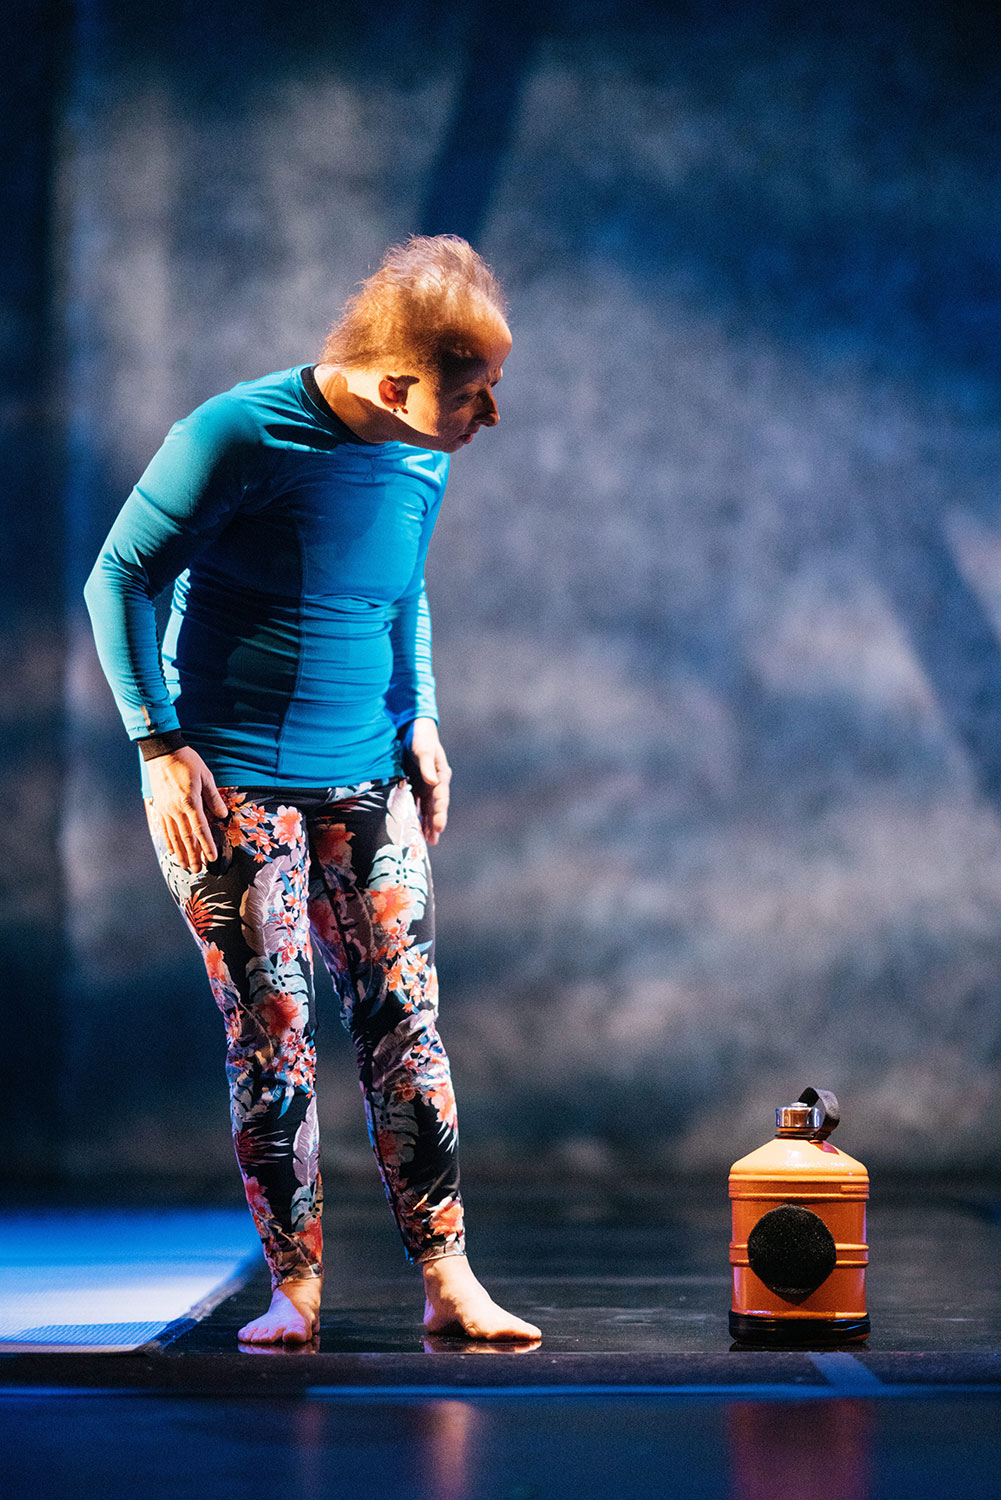 A full portrait shot of a white woman in blue hair standing onstage looking down at an orange water bottle.